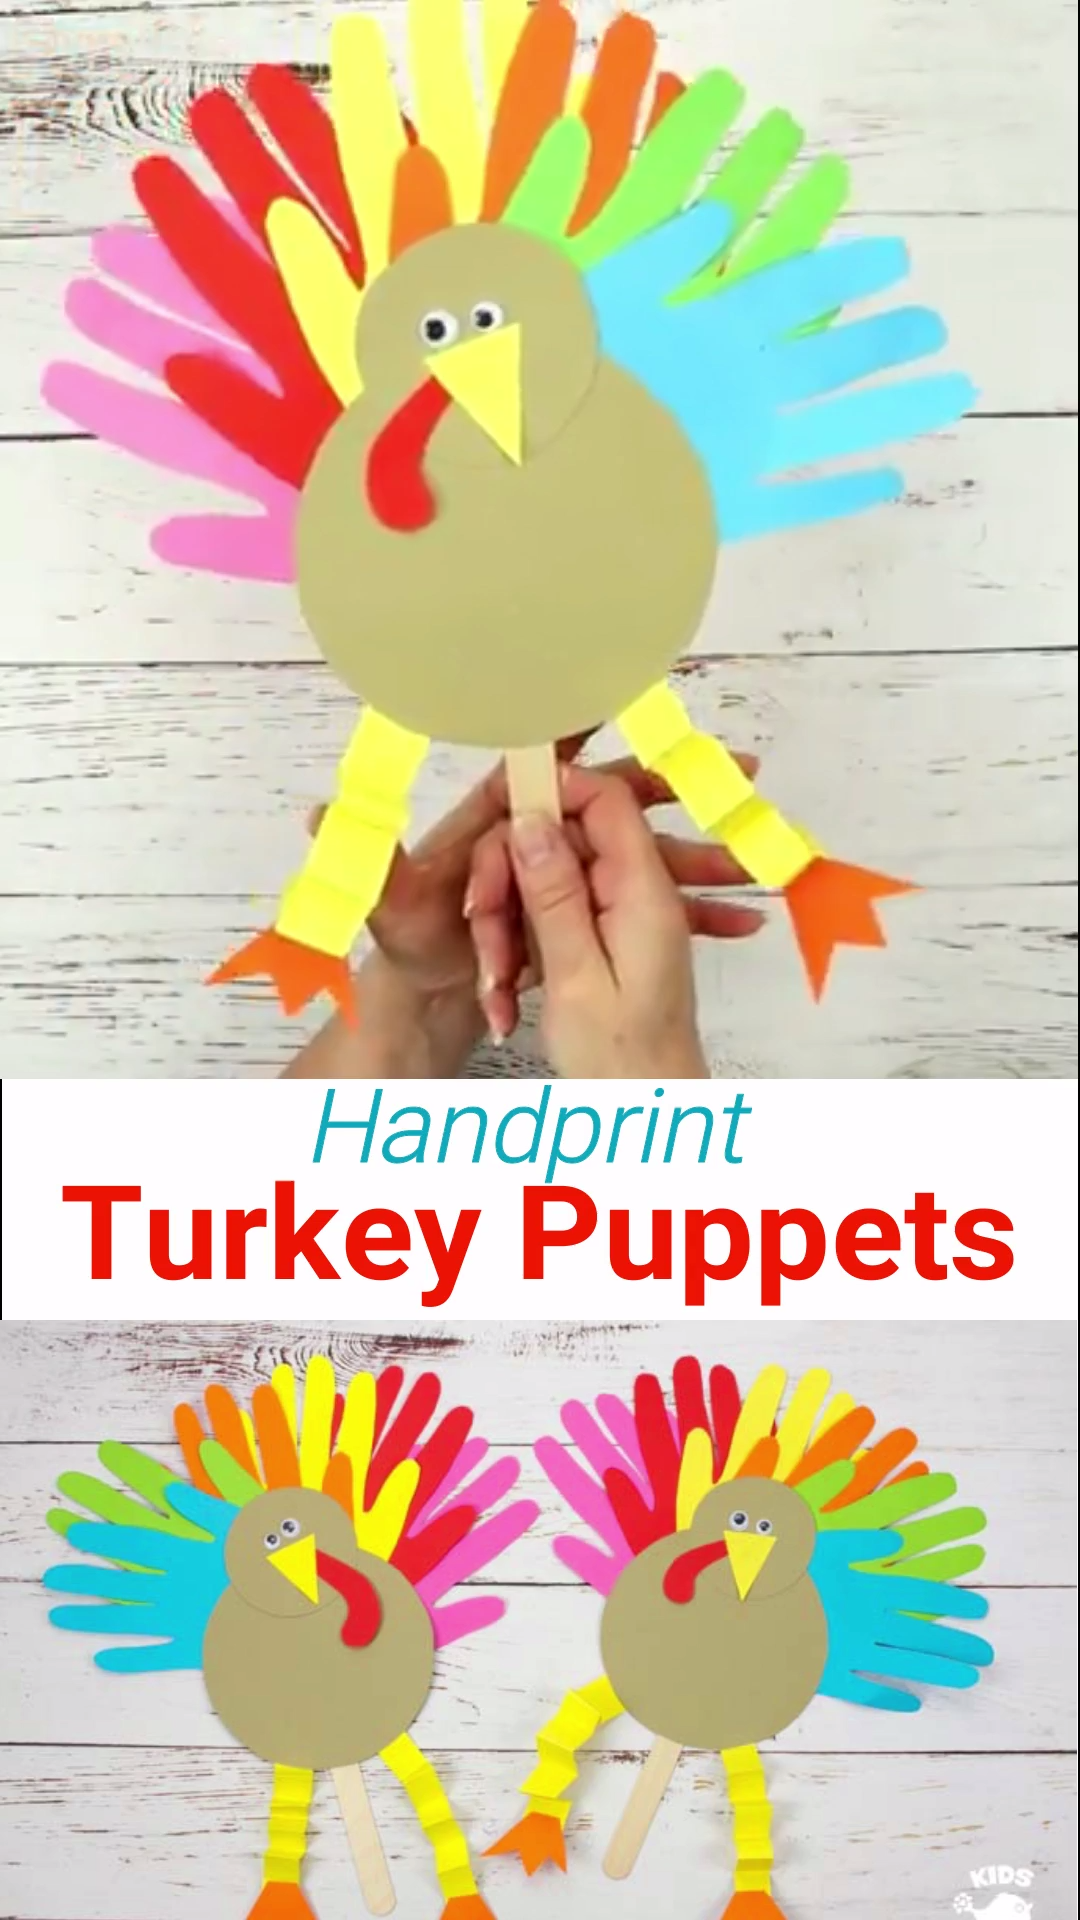 Photo of Handprint Turkey Puppets